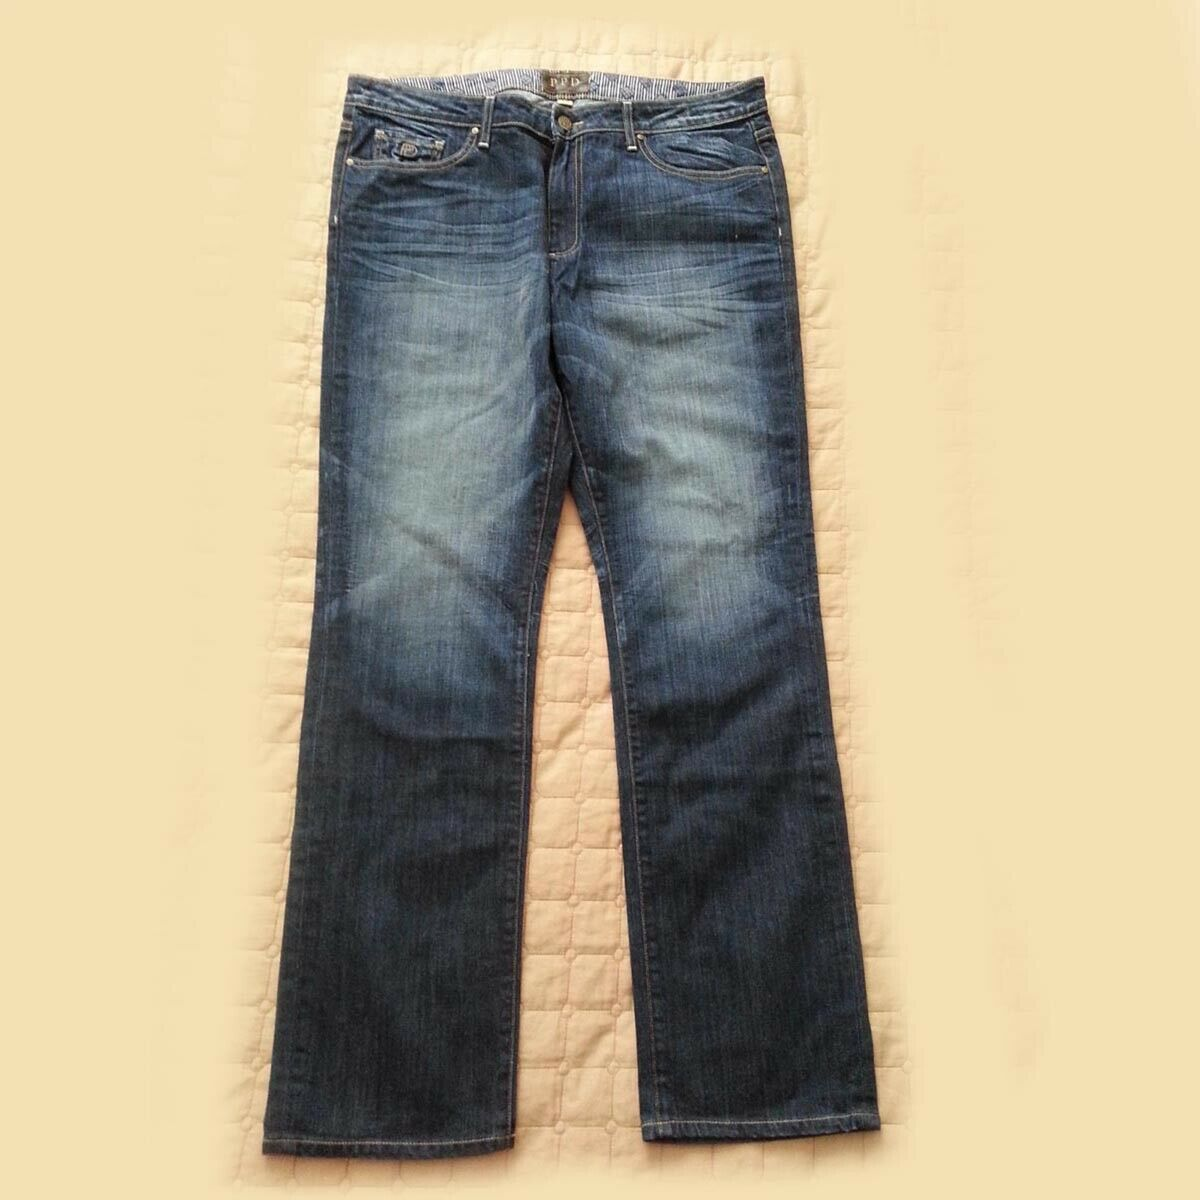 PAIGE Men's Normandie Slim Straight Jean Size 38x34 Made in USA